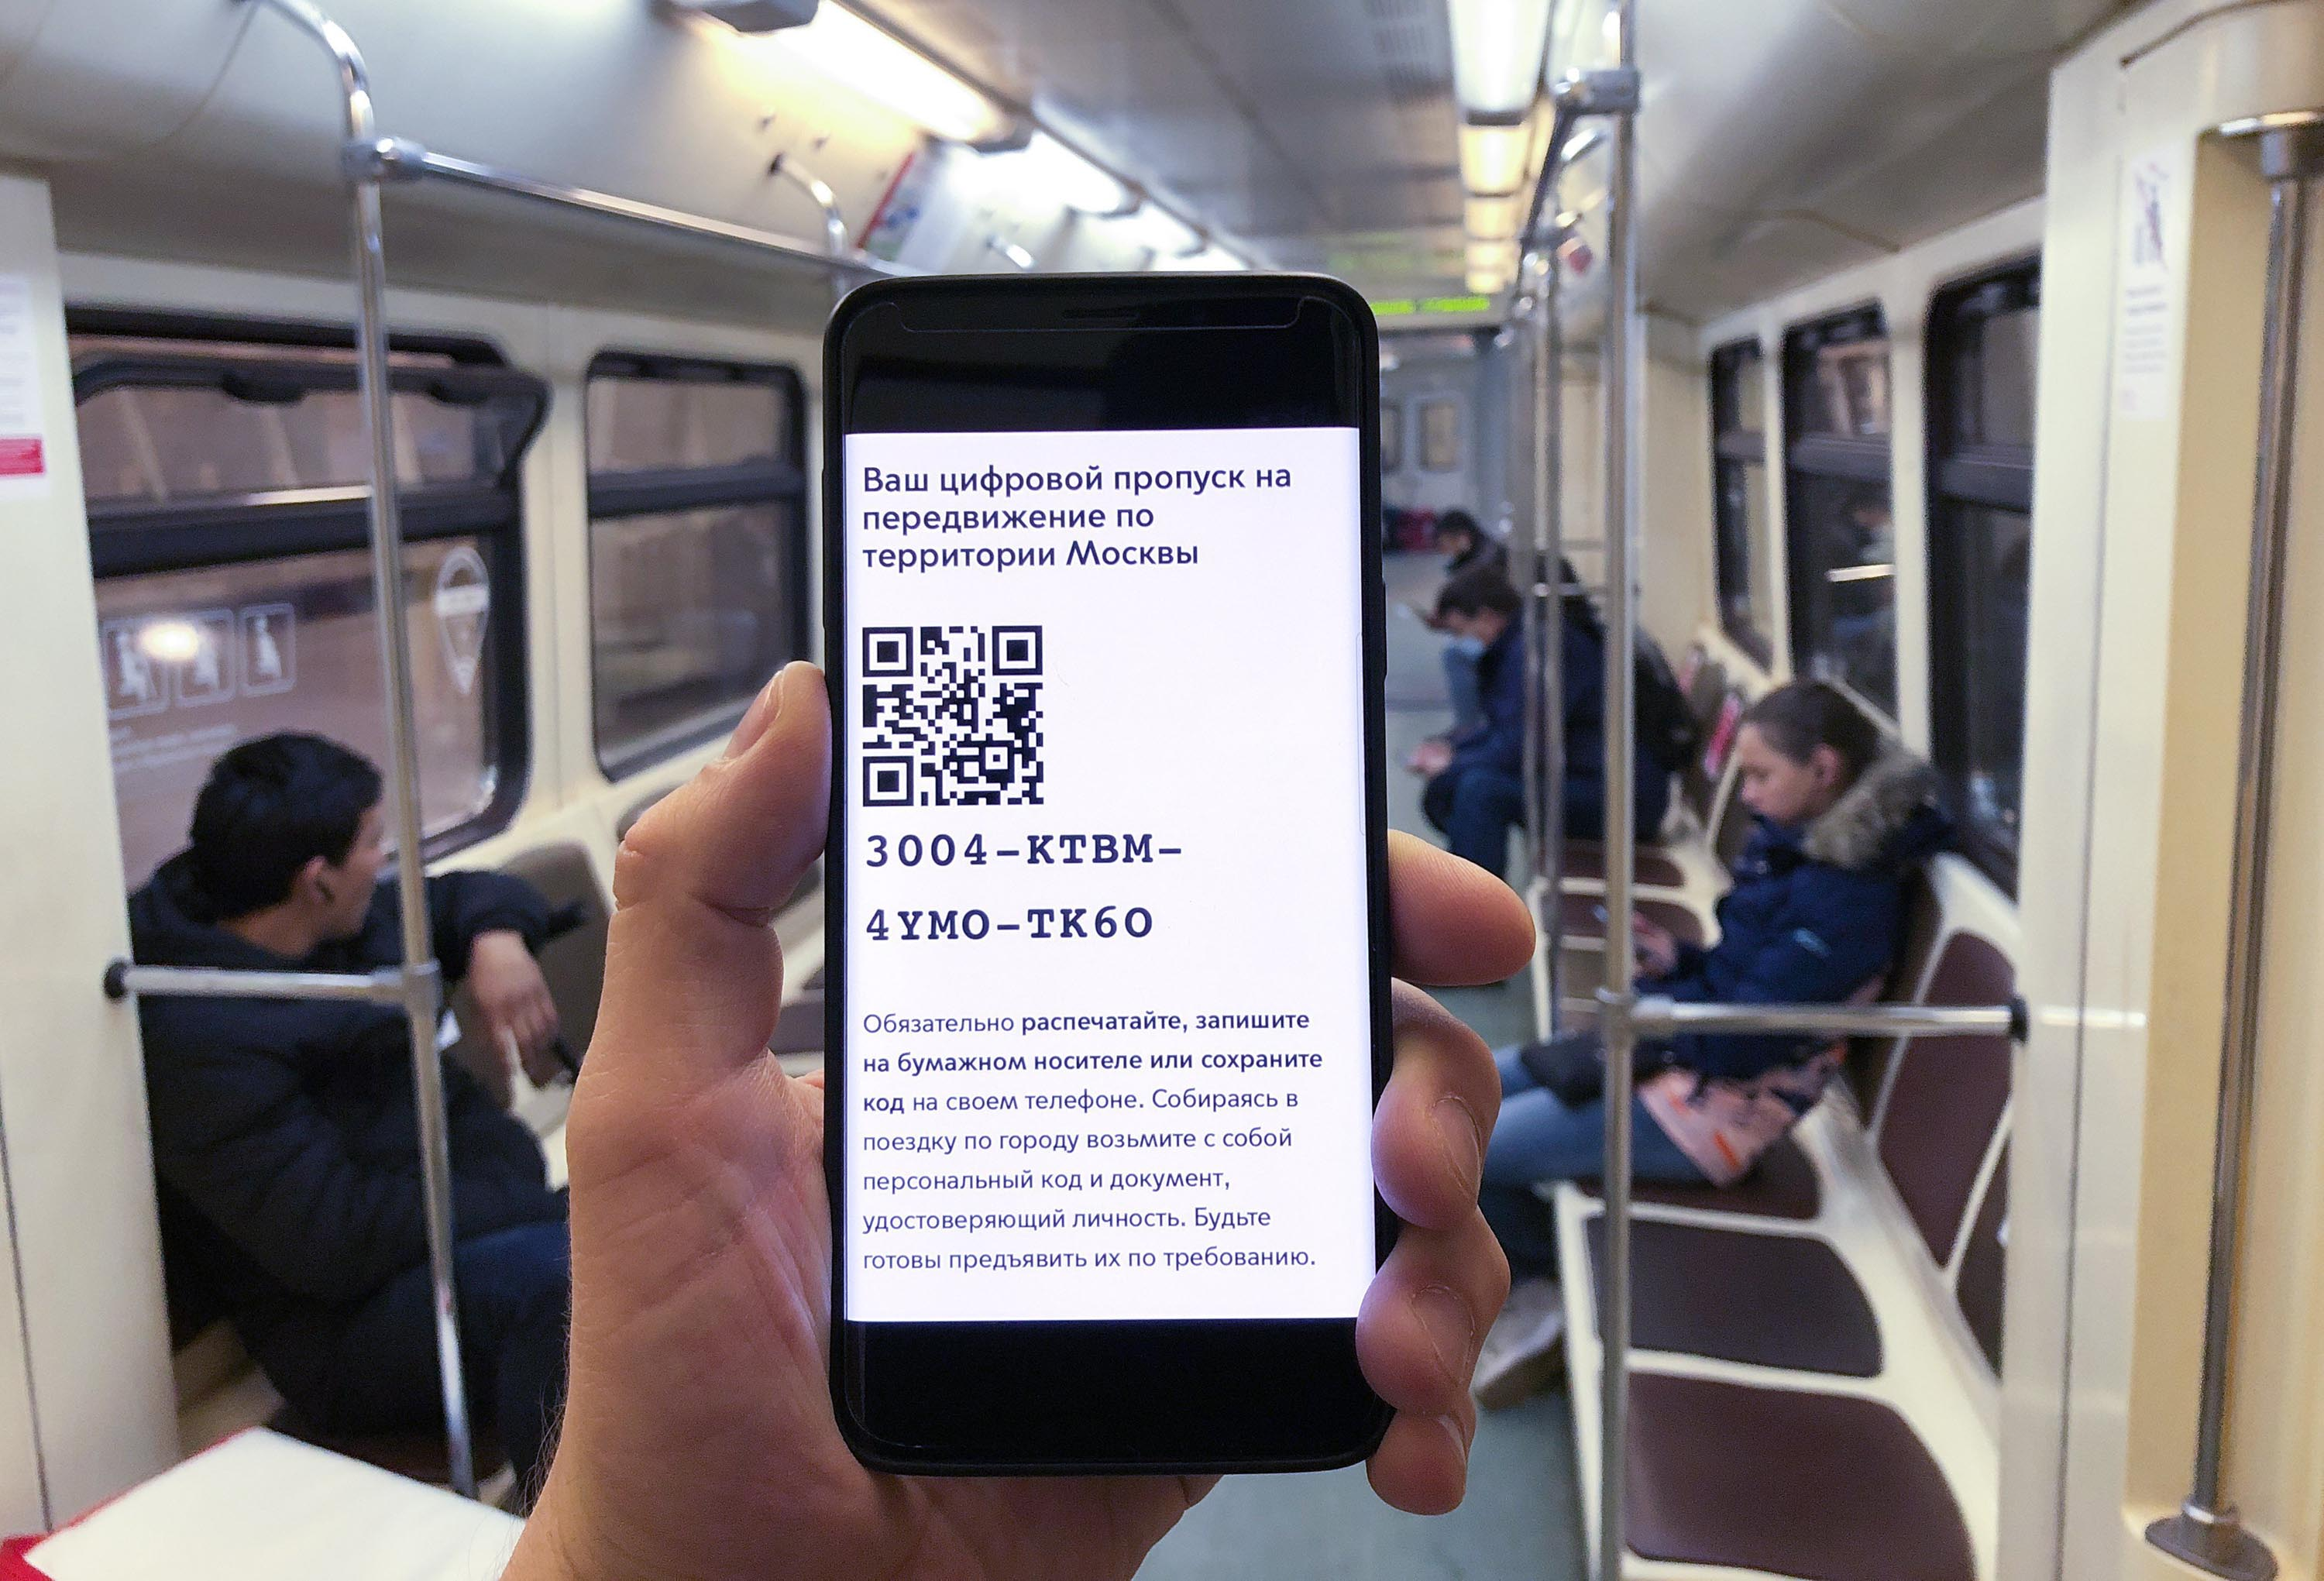 A Moscow metro passenger displays an electronic pass Tuesday with a QR code on a phone.